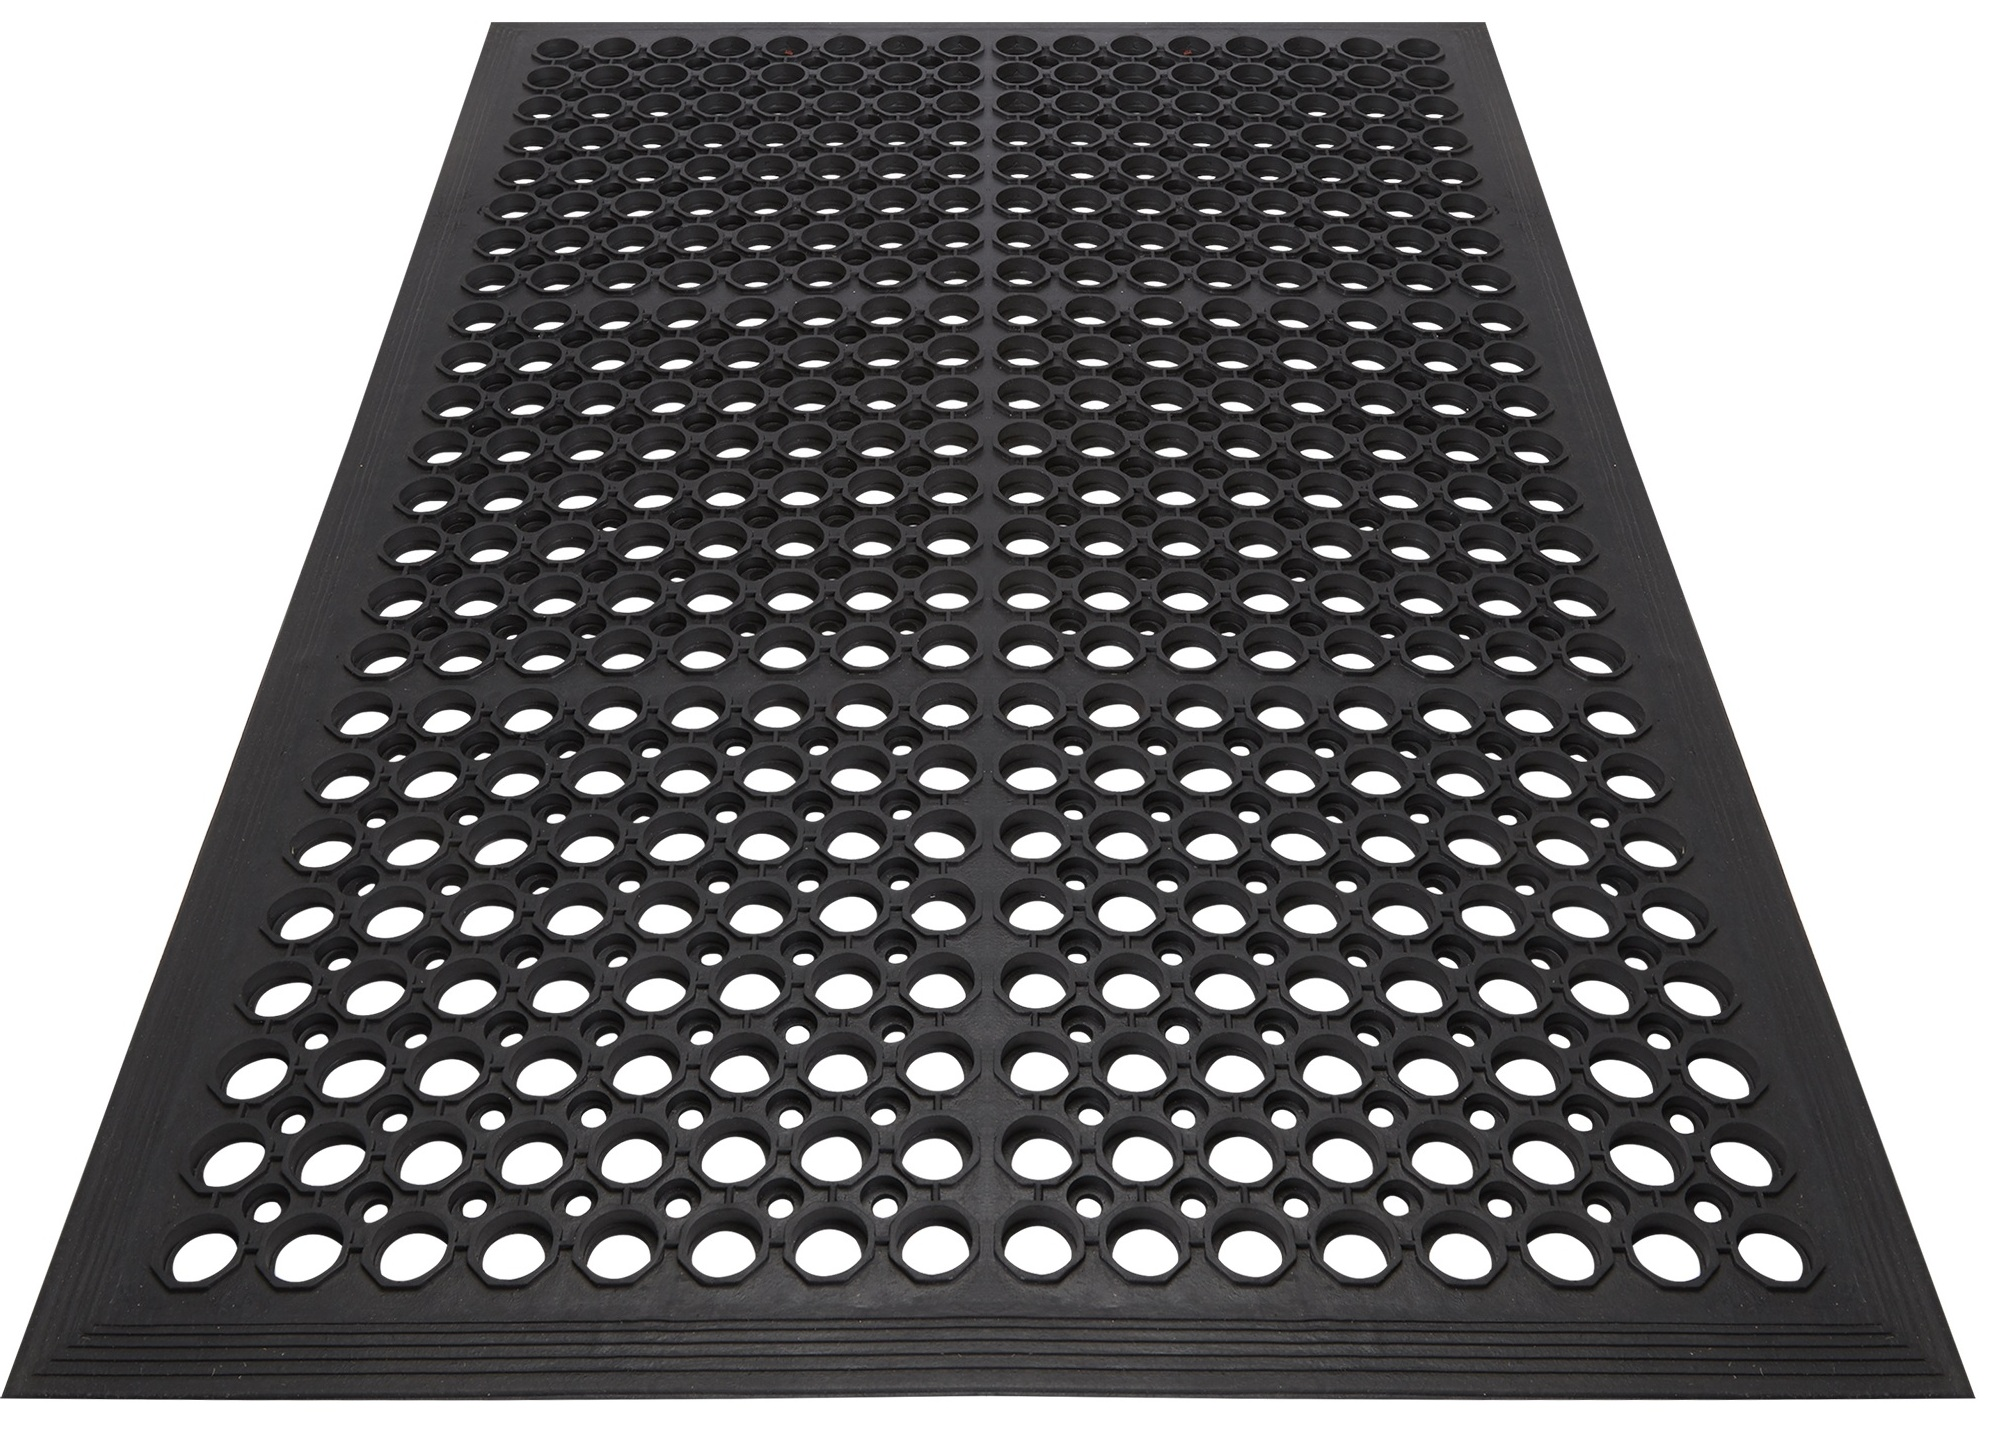 Weather Floor Mats | Perforated Drainage Mats Suppliers ...